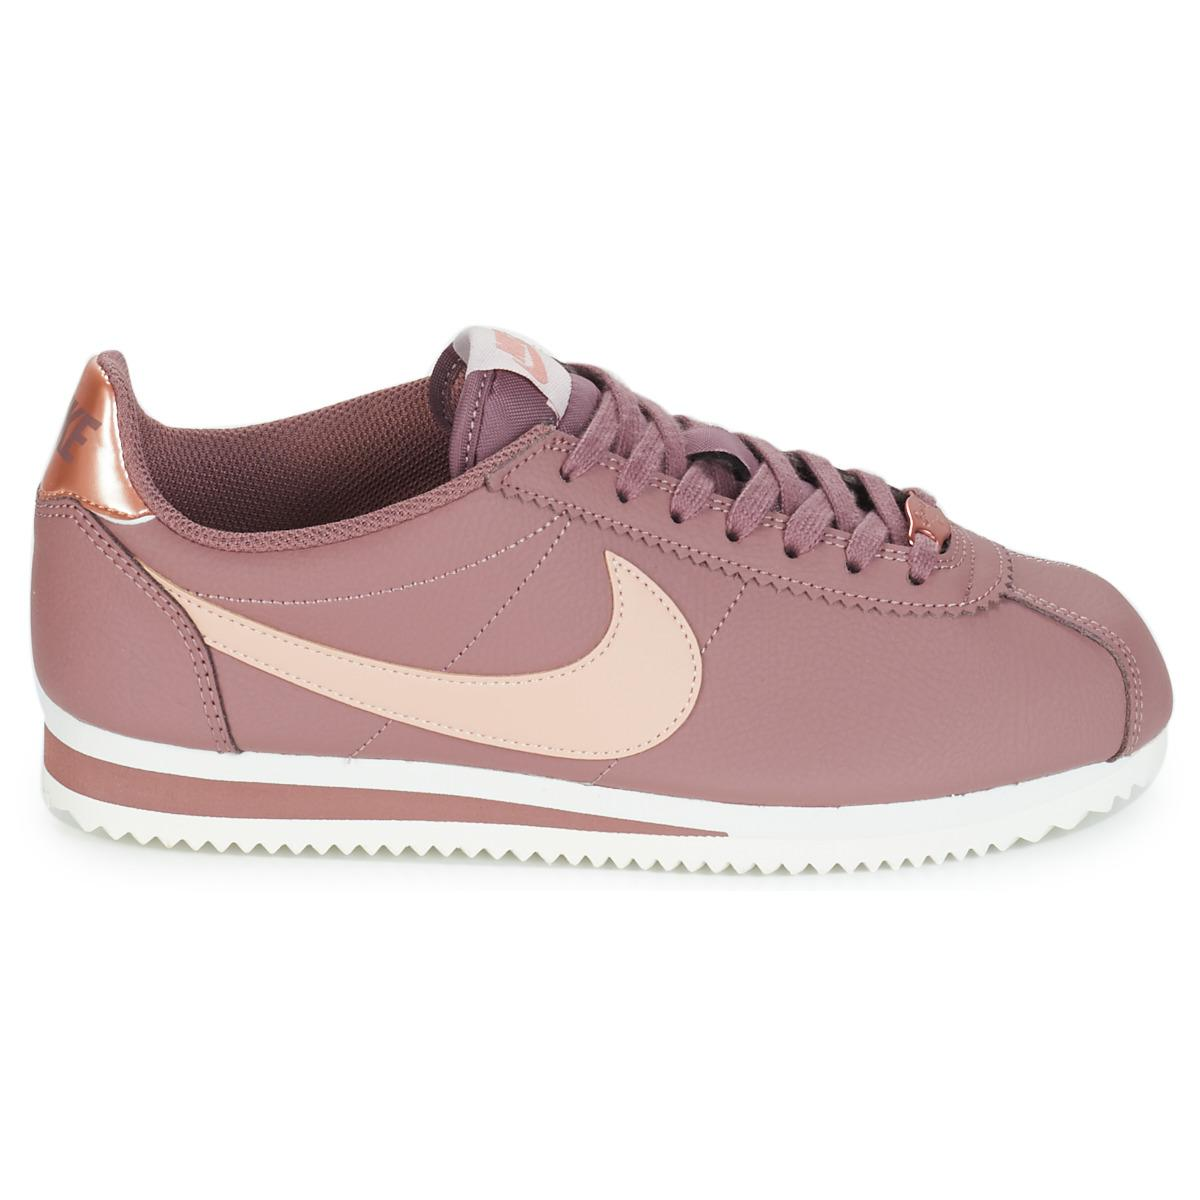 d491b1a18e Nike Classic Cortez Leather W Shoes (trainers) in Pink - Lyst